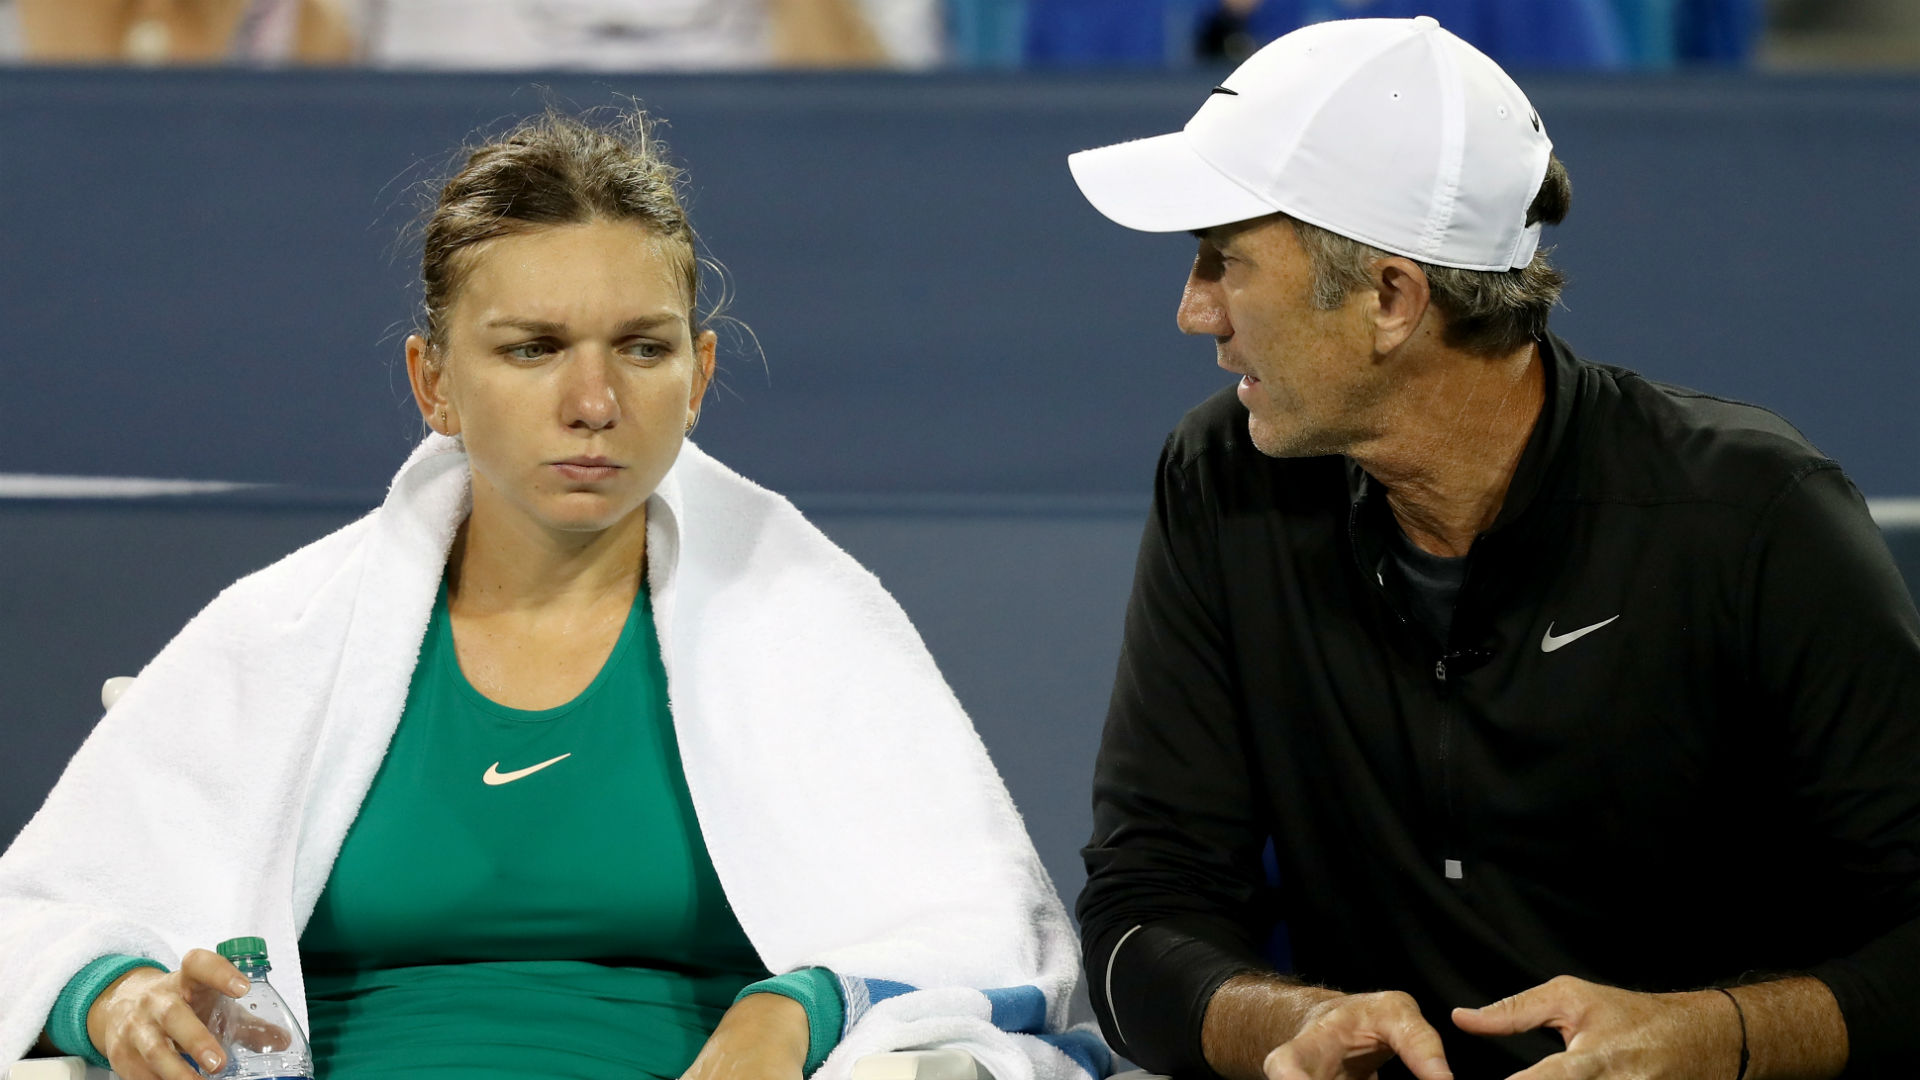 Cahill announces Halep split for family reasons